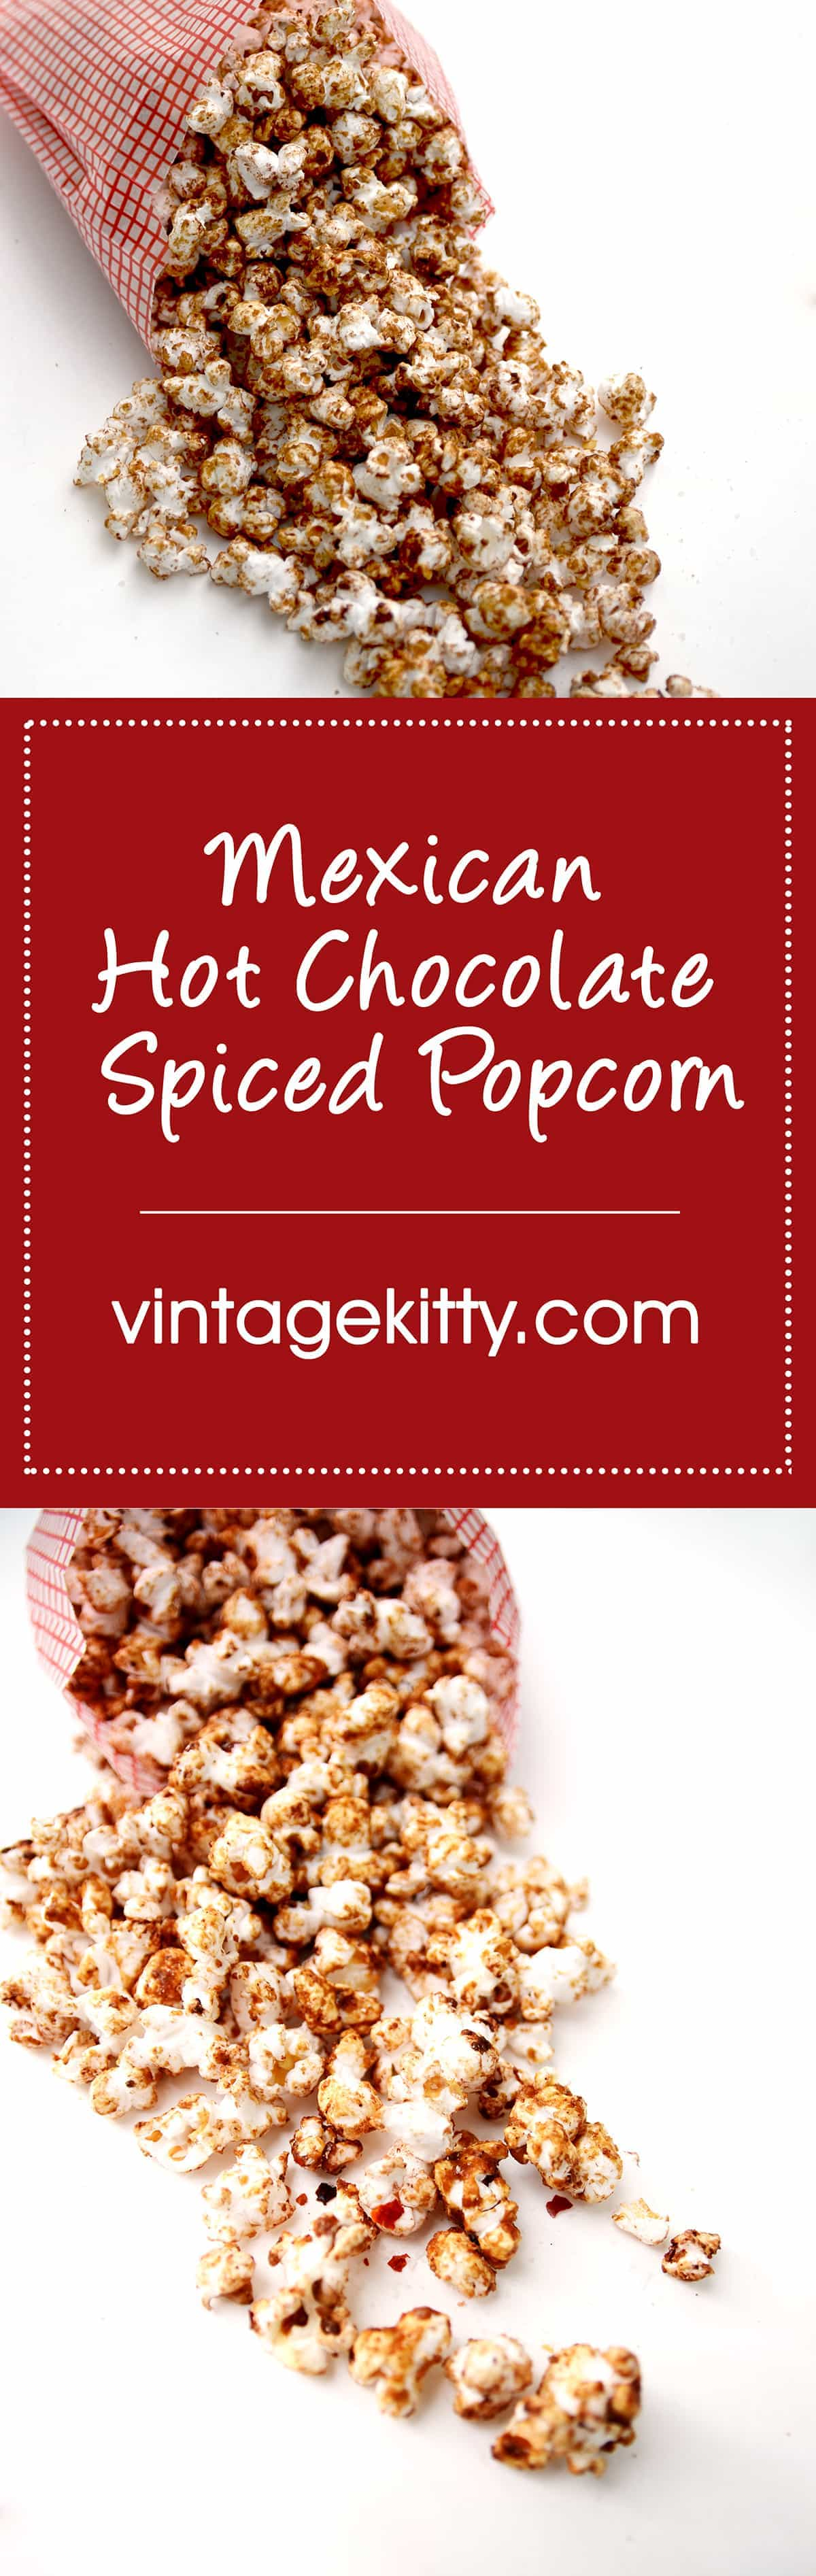 Popcorn Pin - Mexican Spiced Hot Chocolate Popcorn